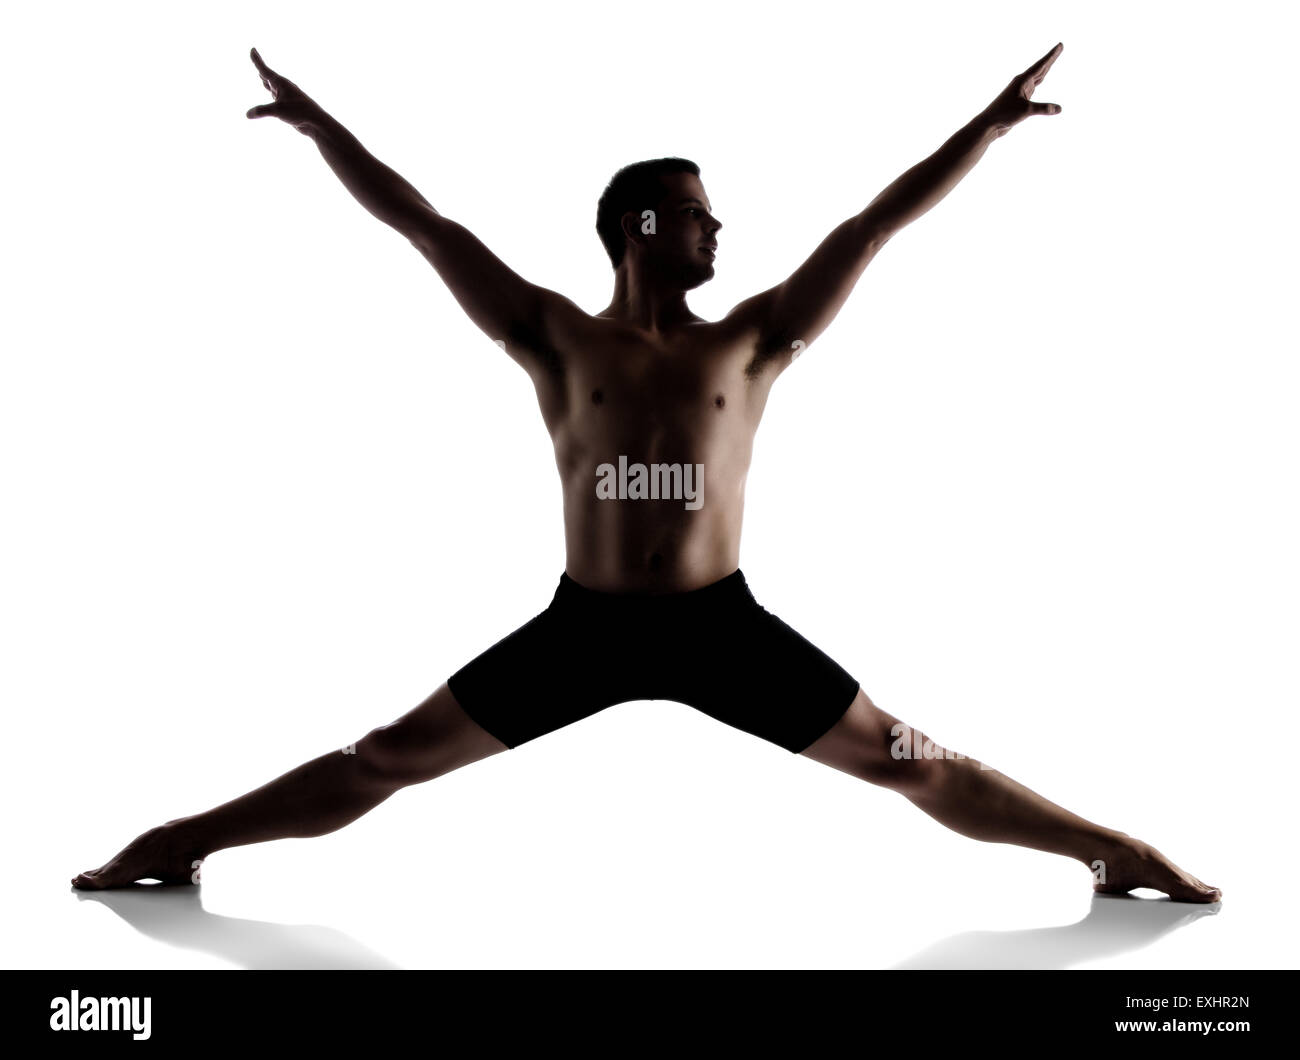 Silhouette of an muscular adult male modern contemporary ballet style dancer. Dancer is wearing black ski pants - Stock Image